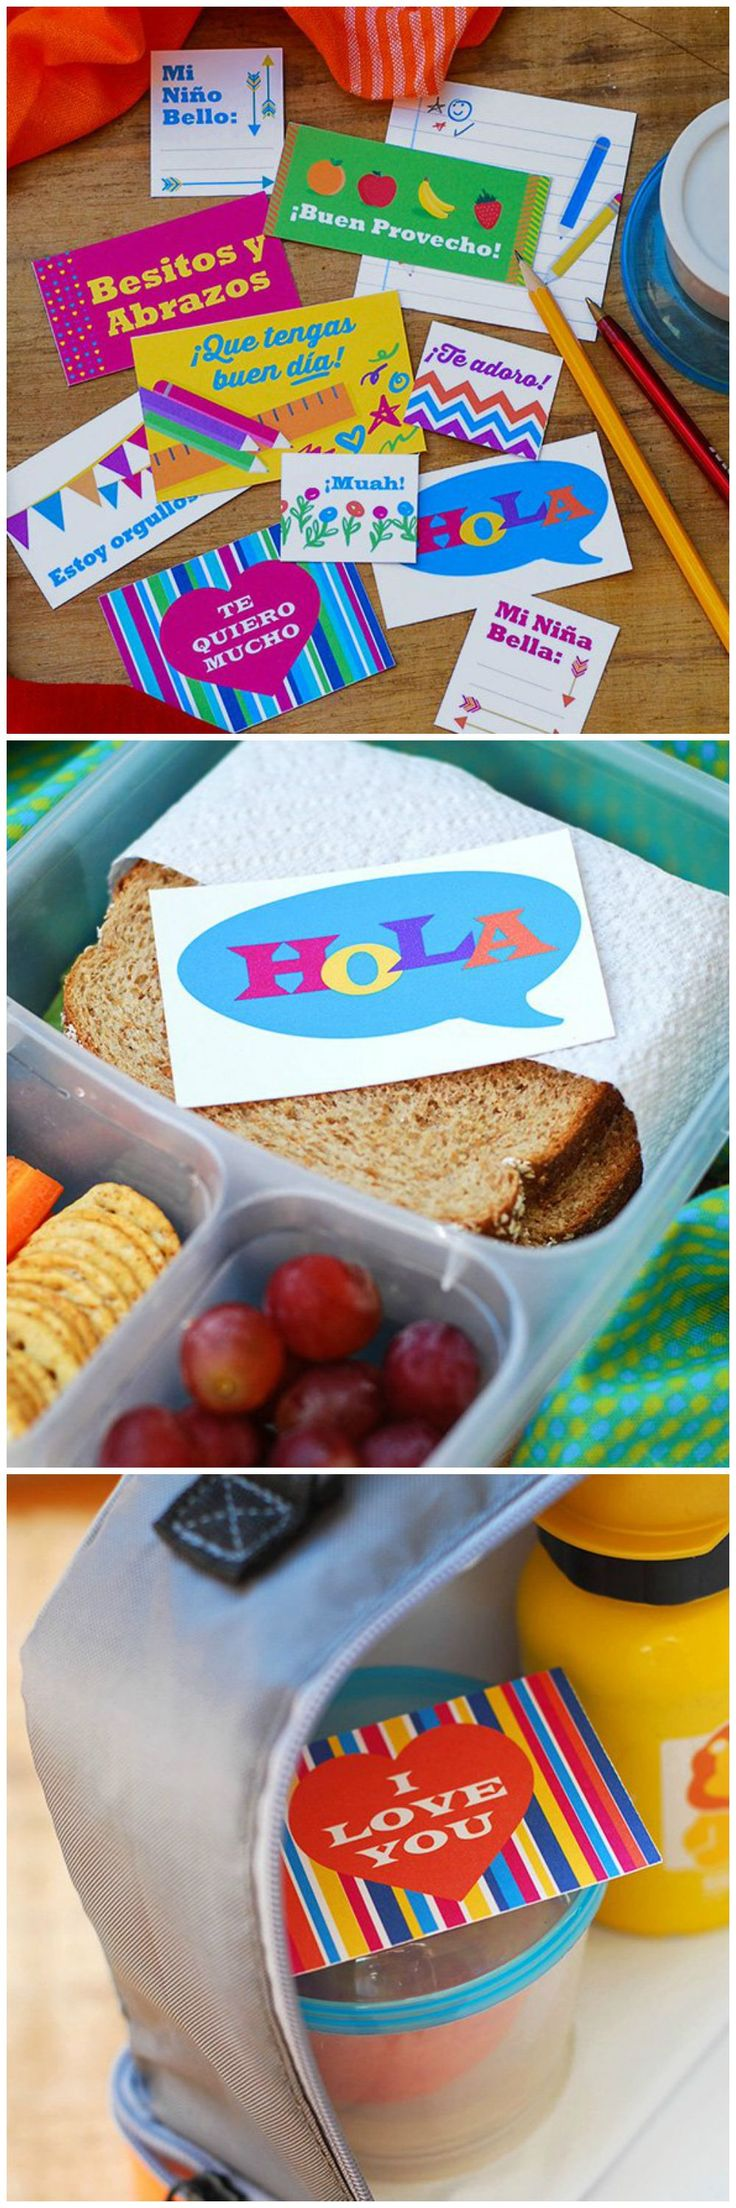 We love these adorable Printable Lunchbox Notes. Slip them in your kids lunch boxes to make them smile at school!